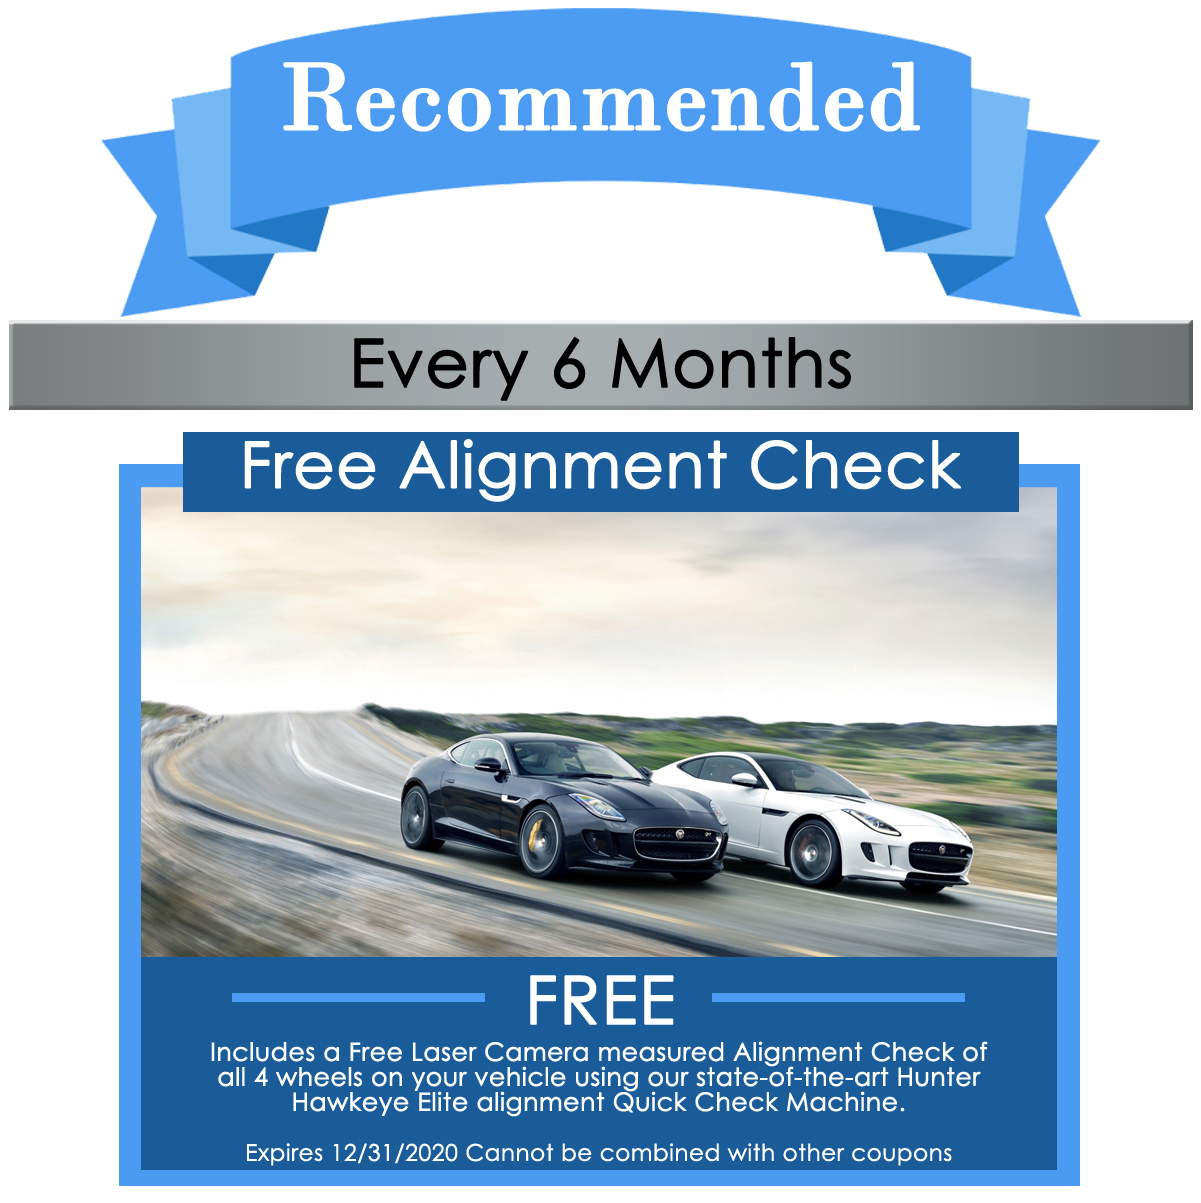 Alignment Check Service